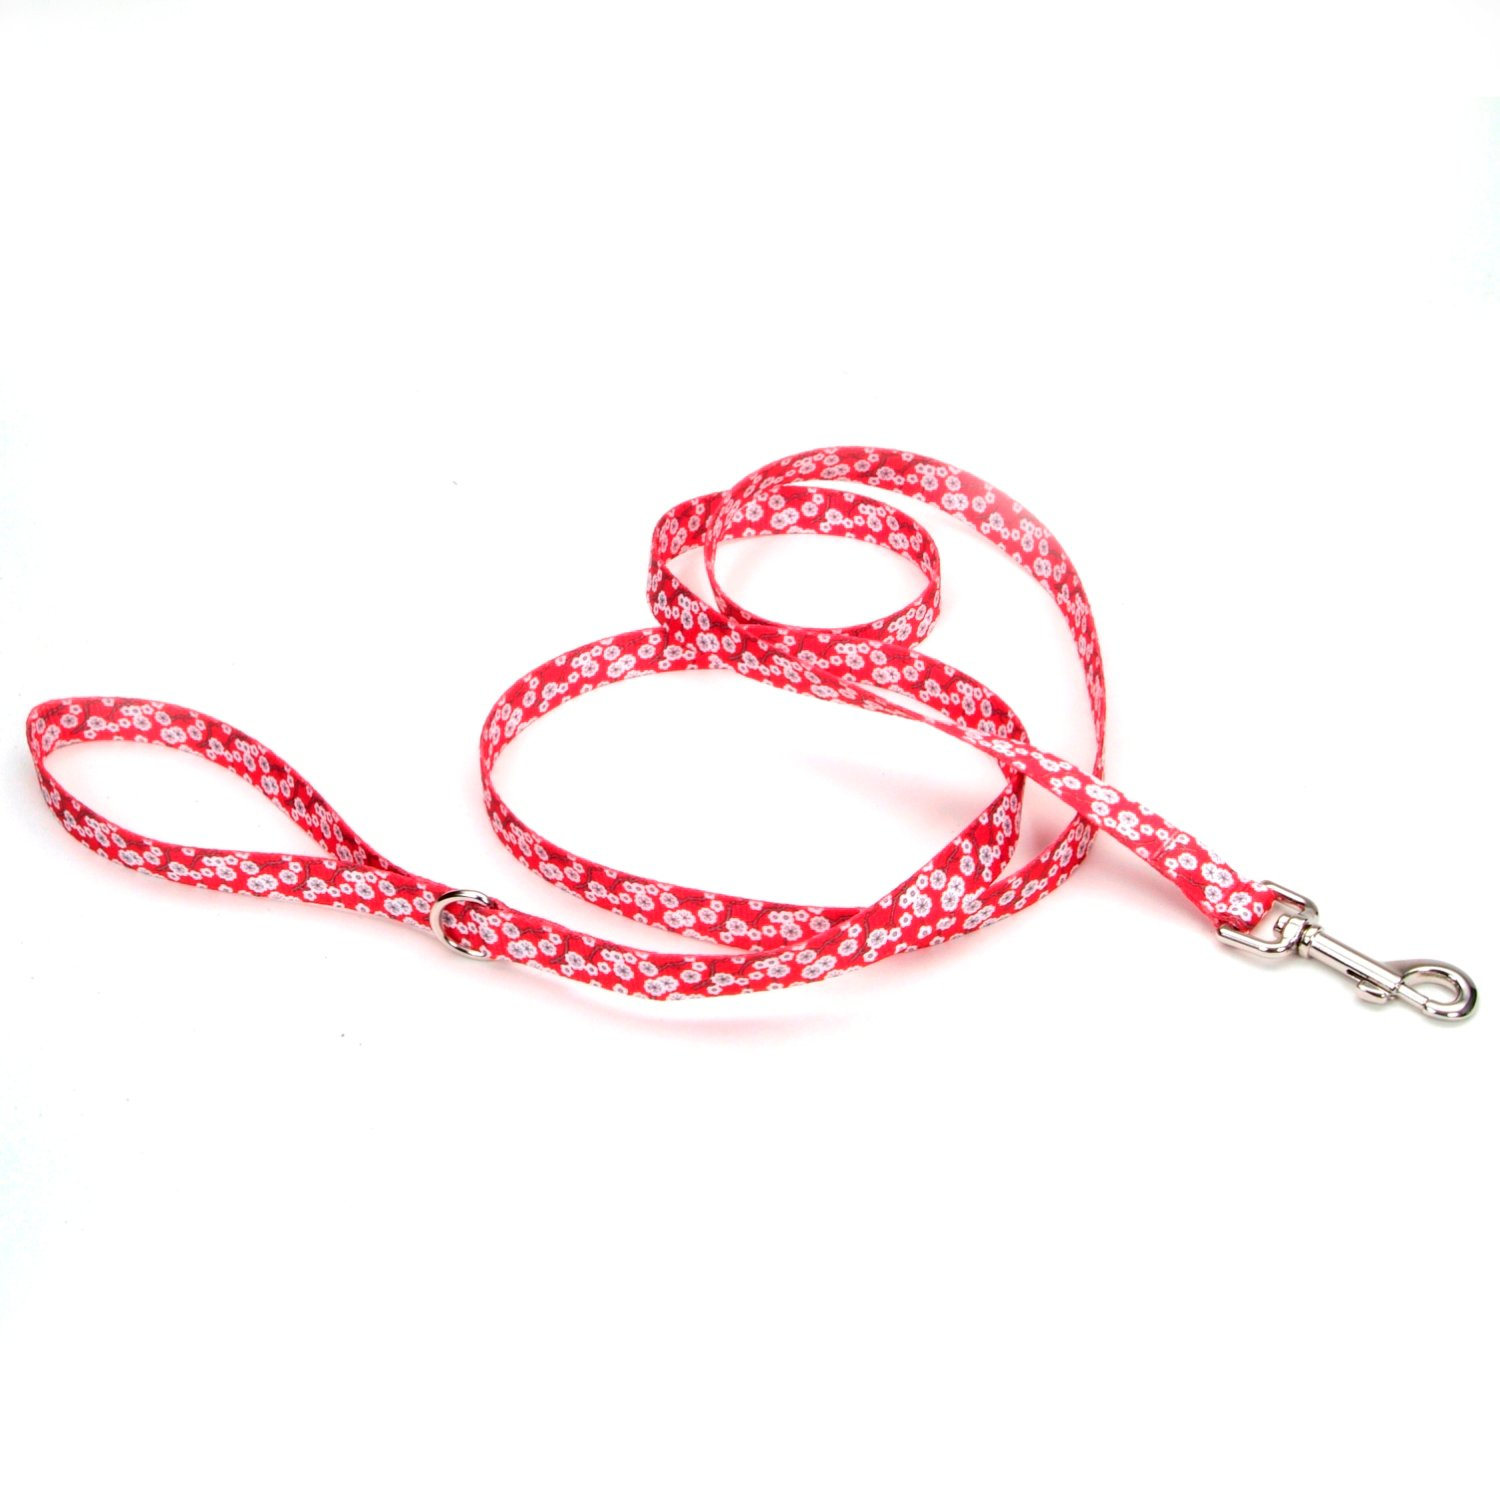 Petco Red Cherry Blossom Dog Leash